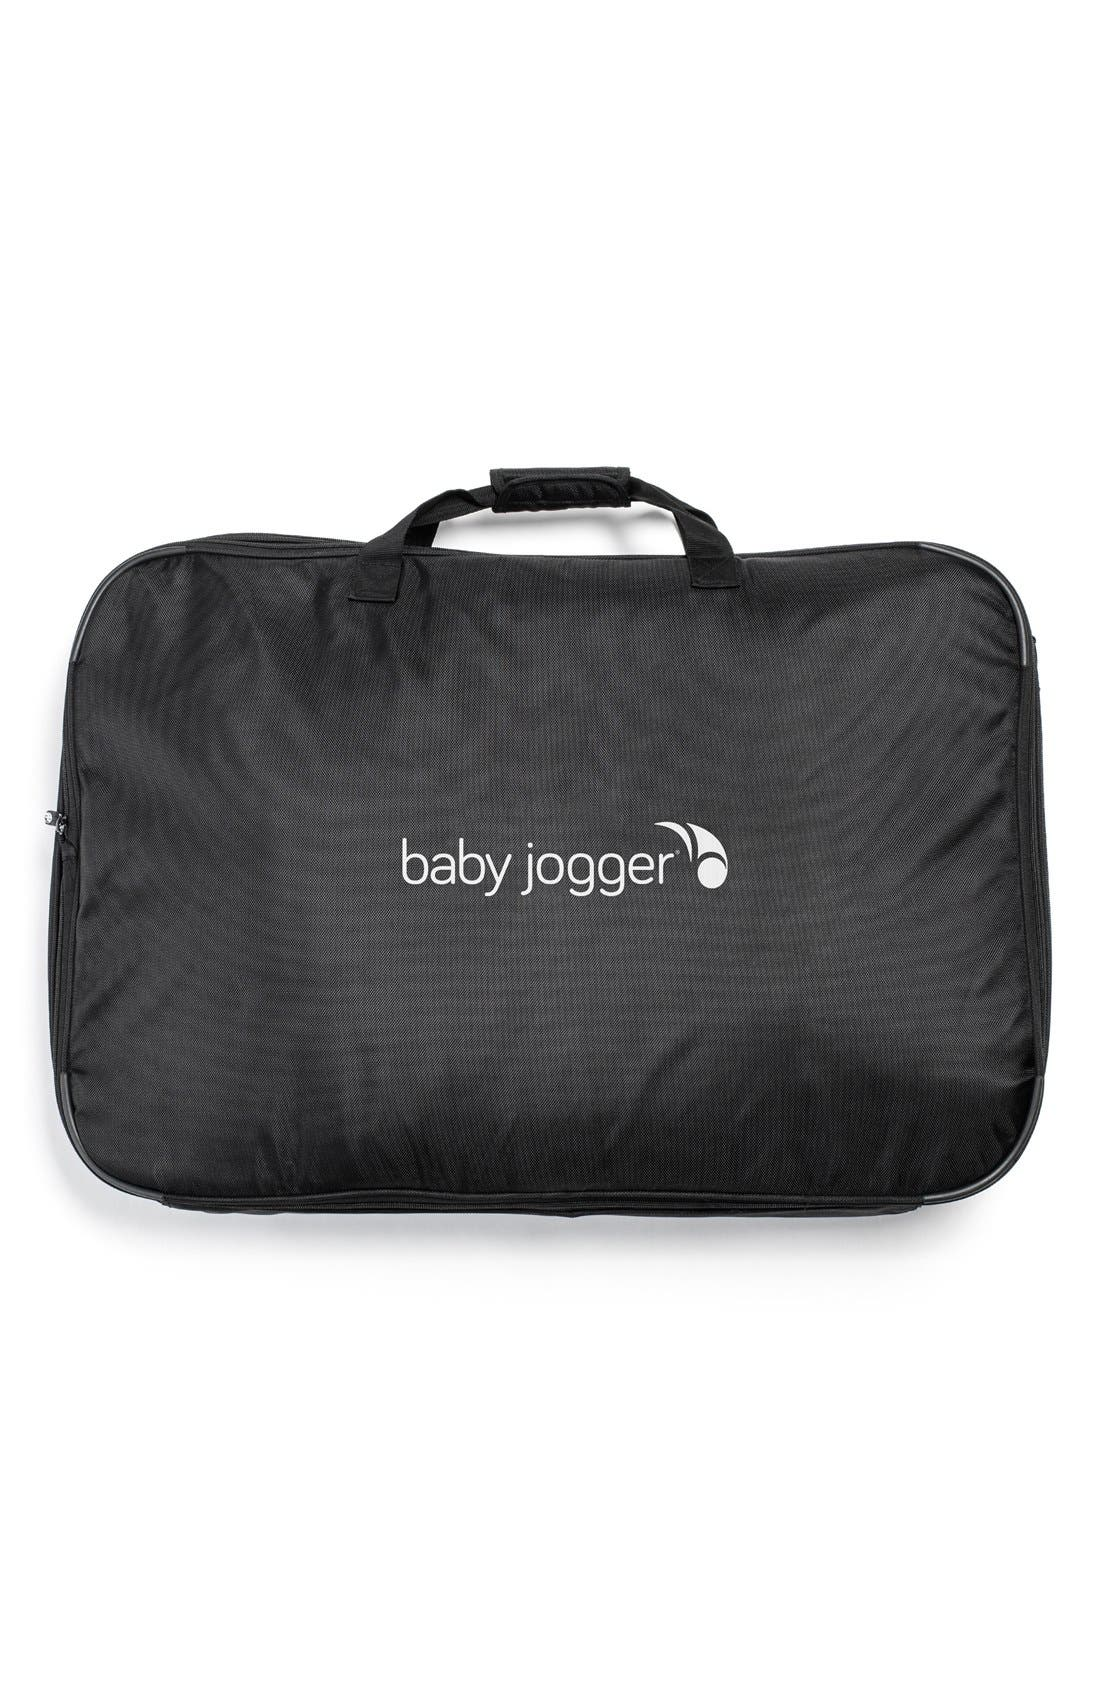 Main Image - Baby Jogger City Mini™ & City Mini GT™ Stroller Carry Bag